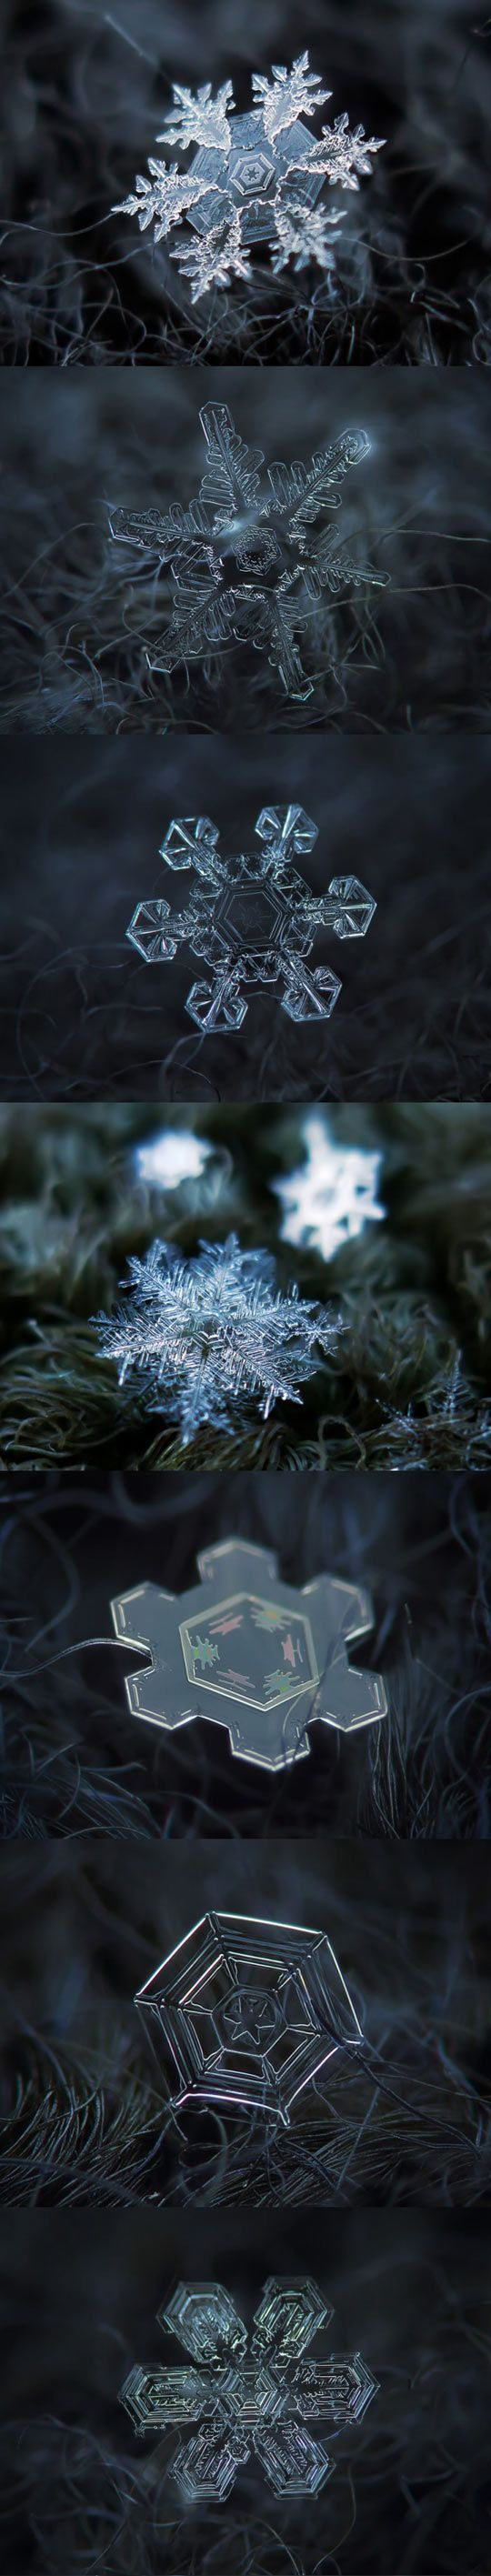 cool-homemade-camera-snowflakes-different